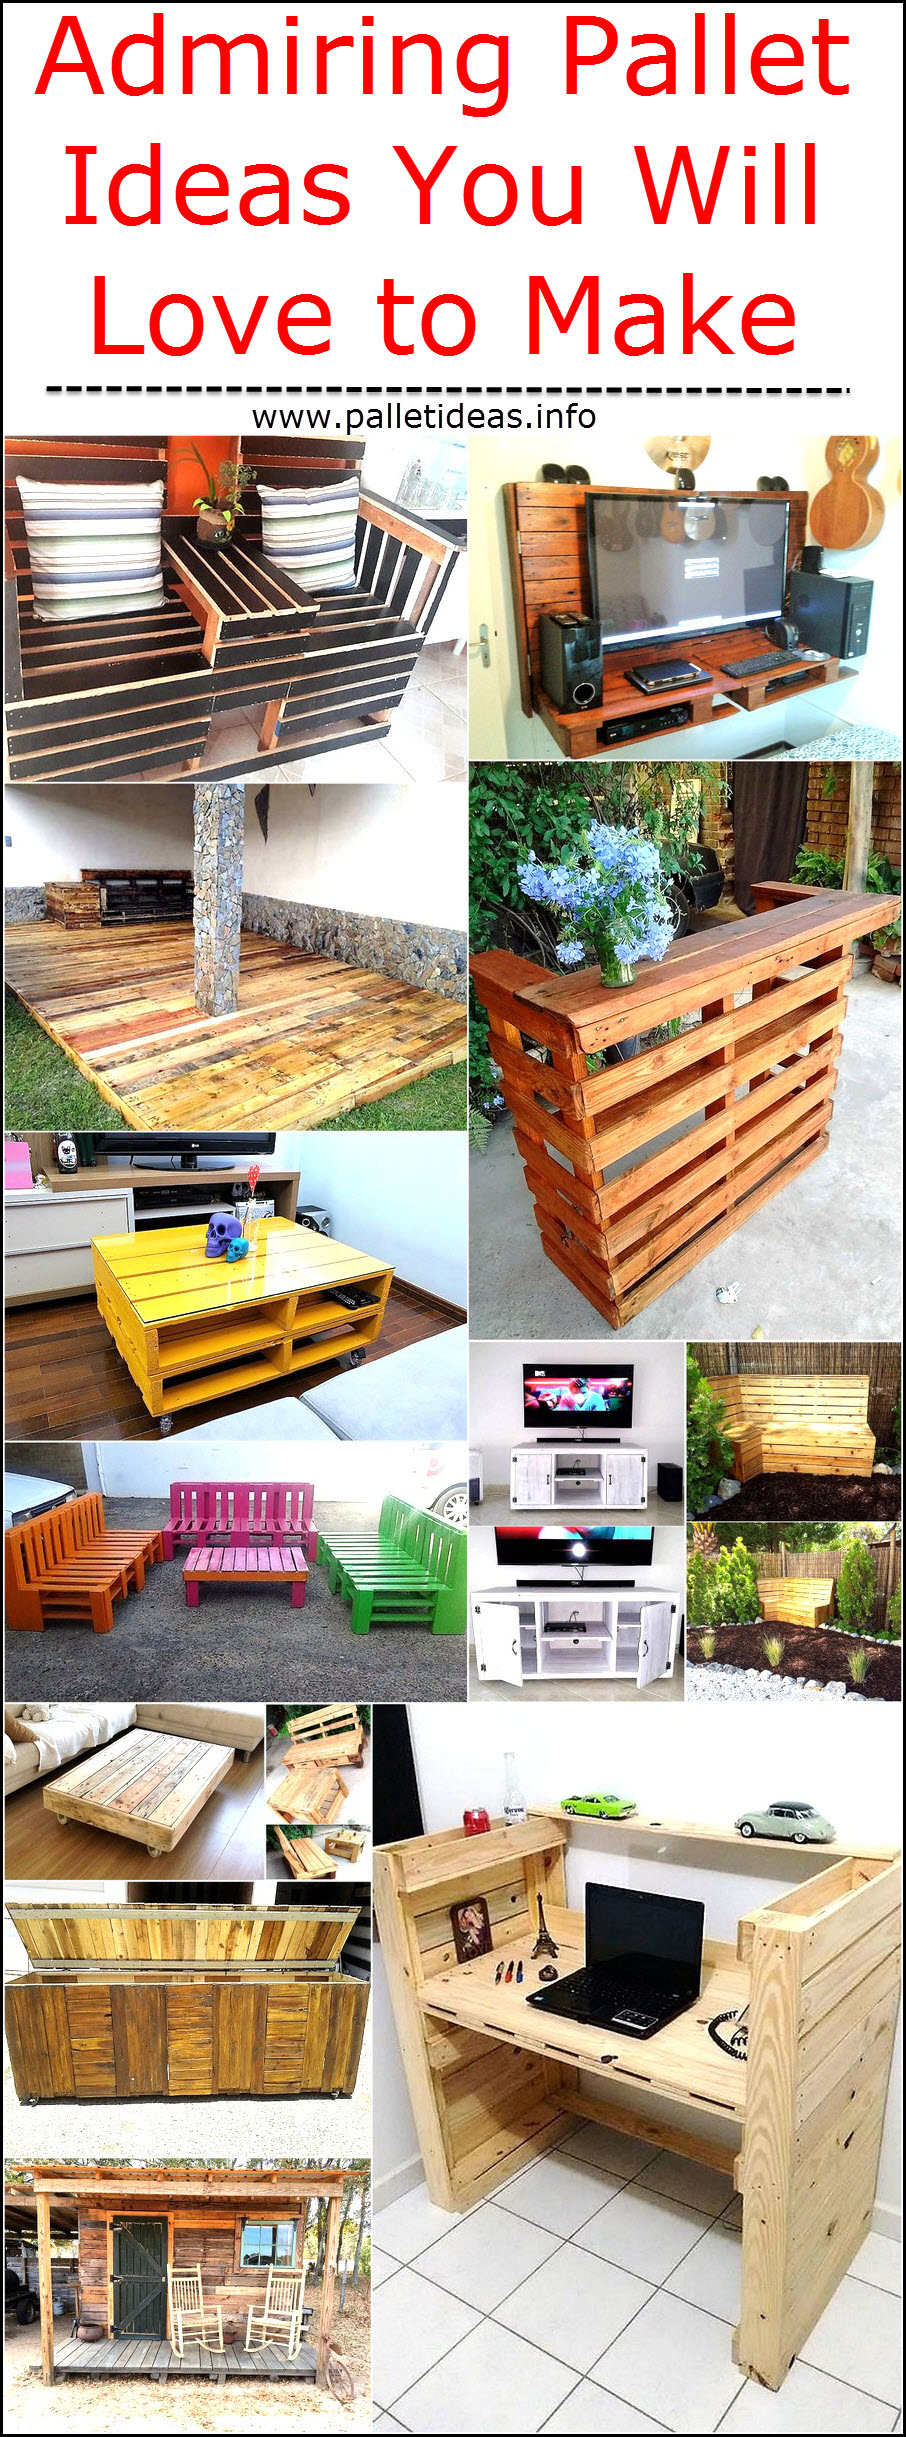 admiring-pallet-ideas-you-will-love-to-make